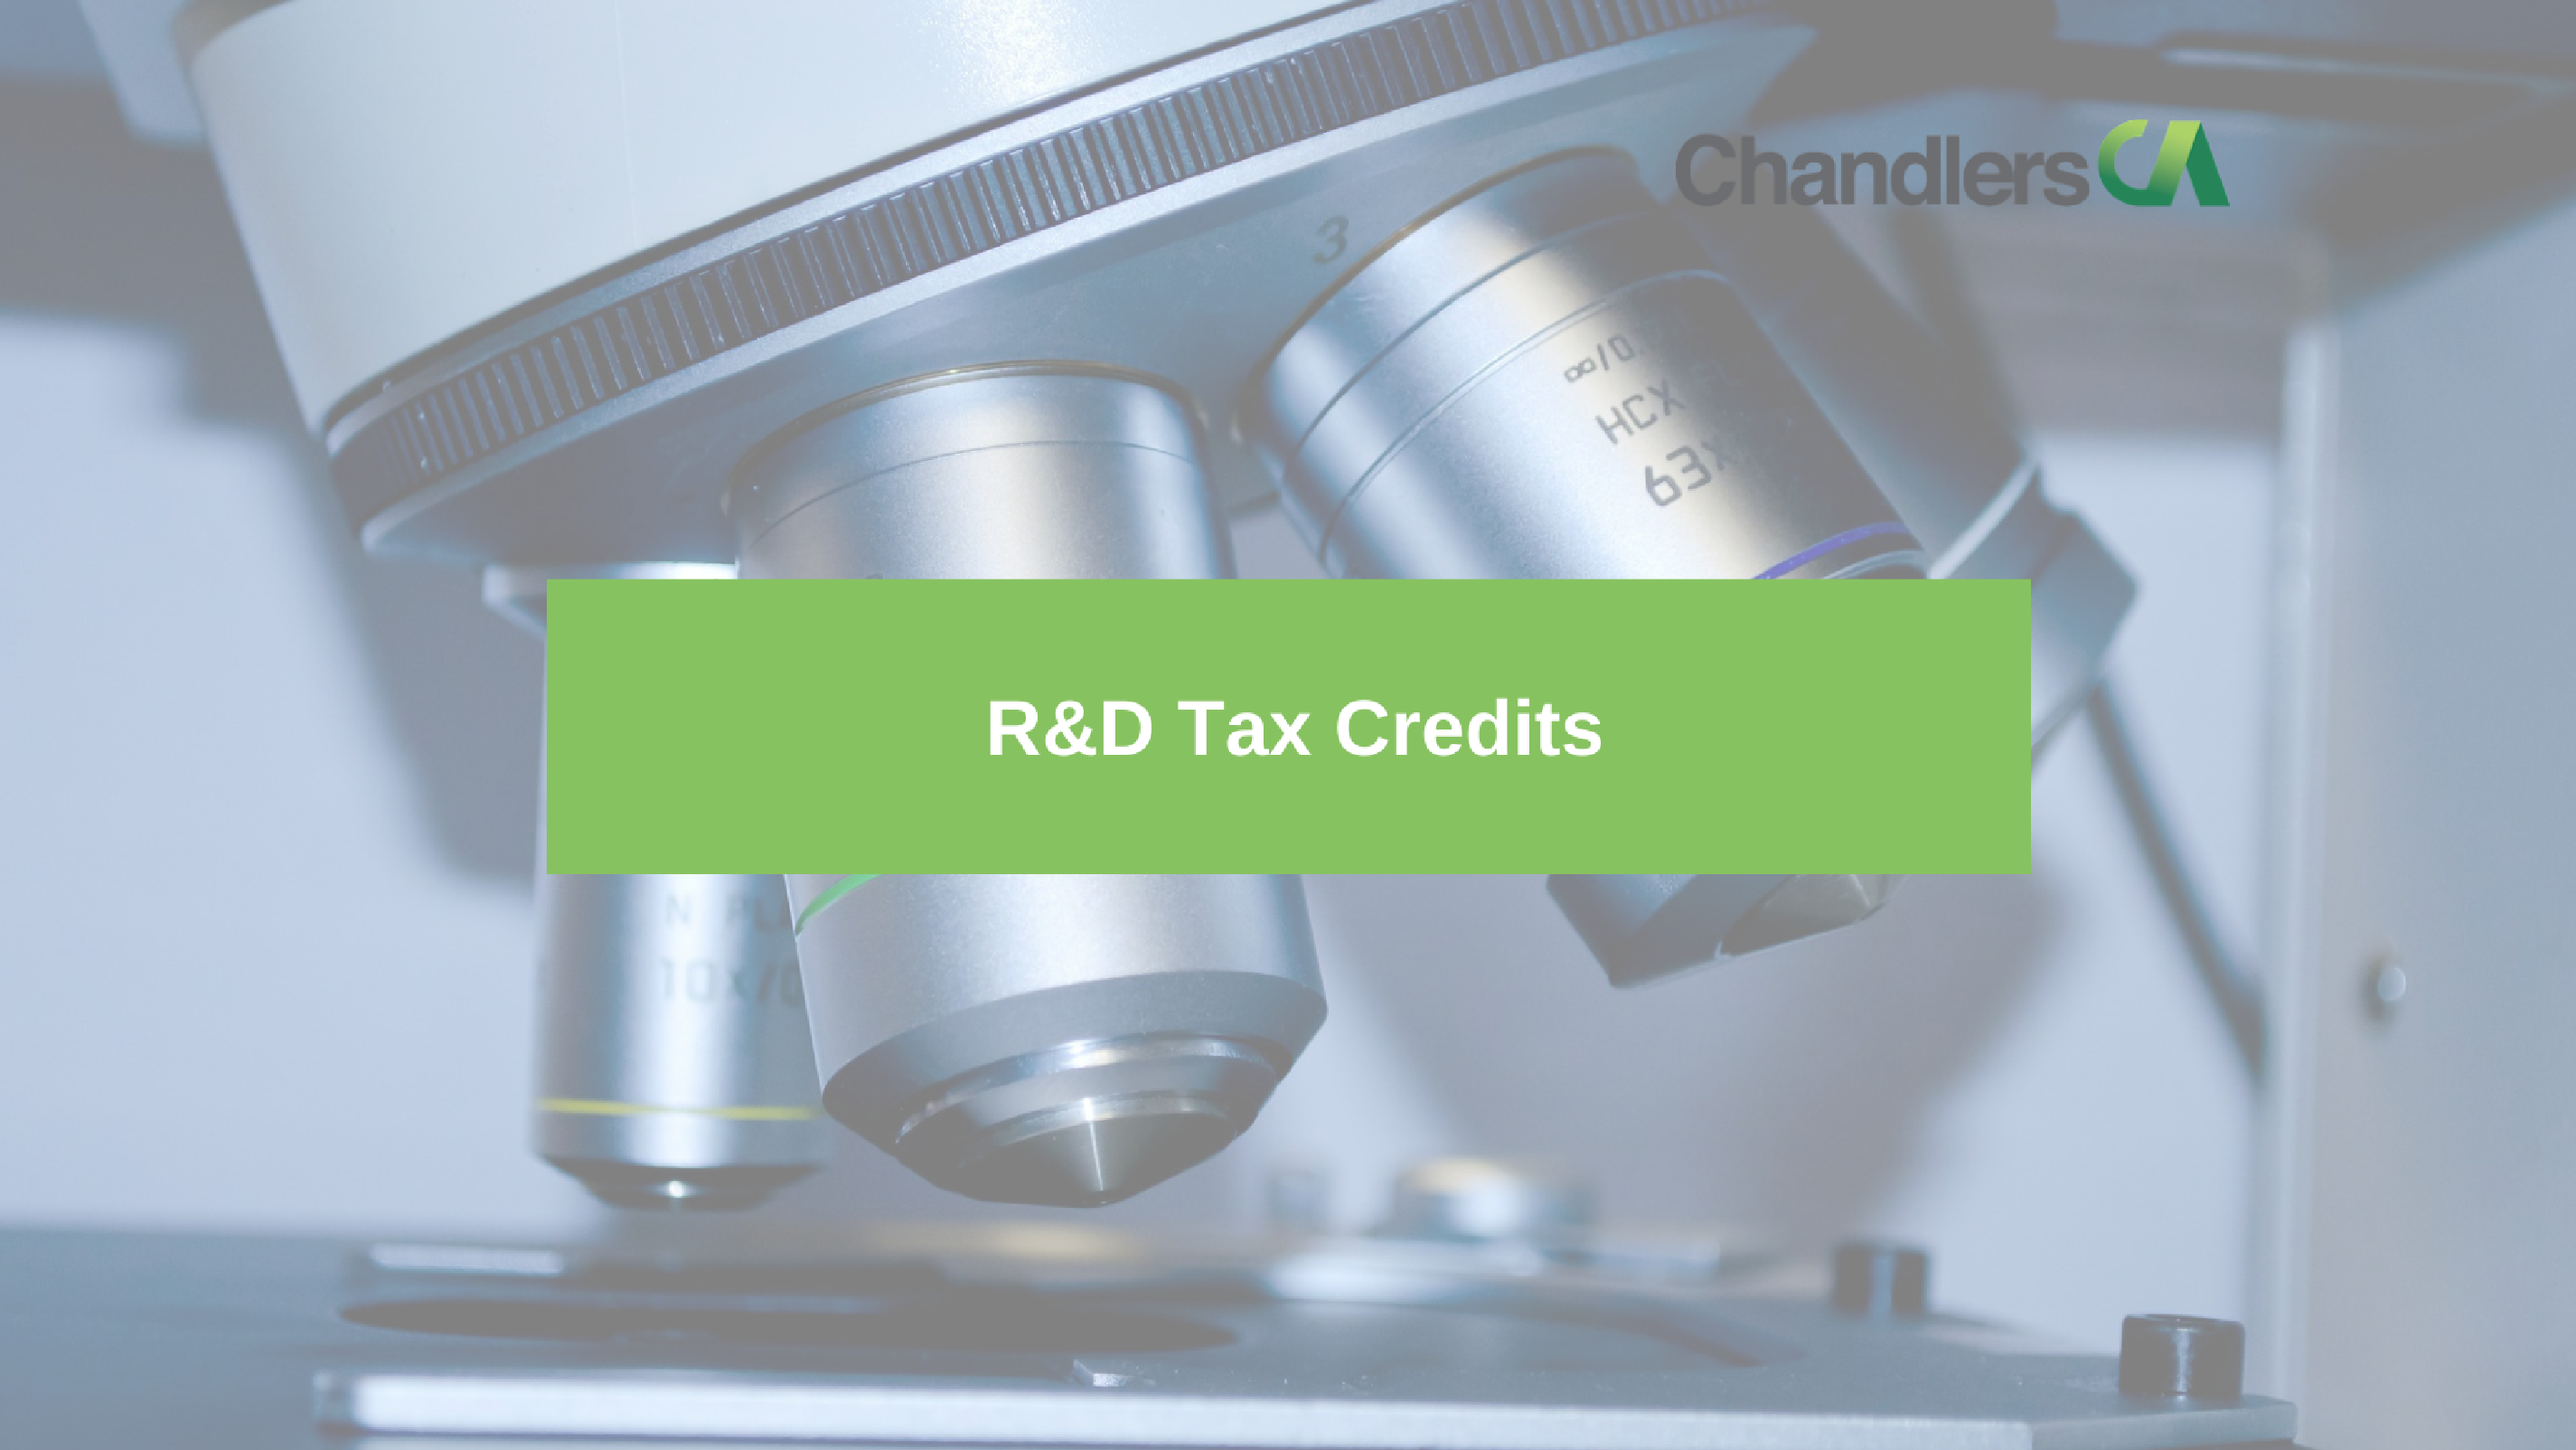 Guide to R and D tax credits for smes showing a microscope